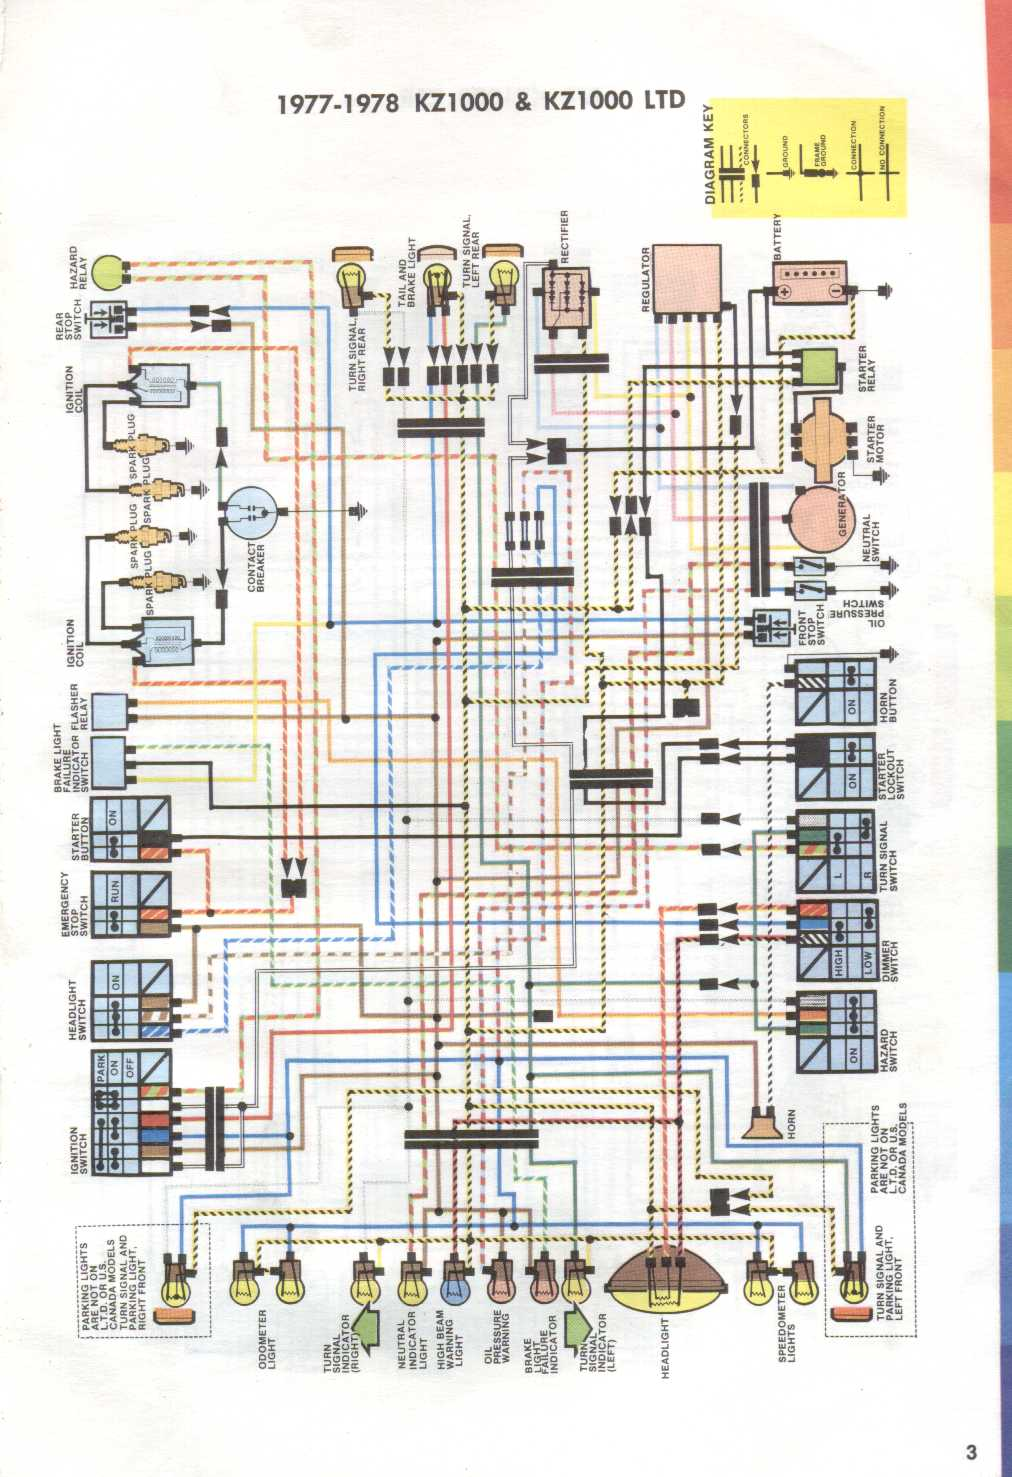 Kawasaki Bajaj Ct 100 Wiring Diagram Library Yamaha Dt 175 Harness 77 78 Kz1000 Ltd